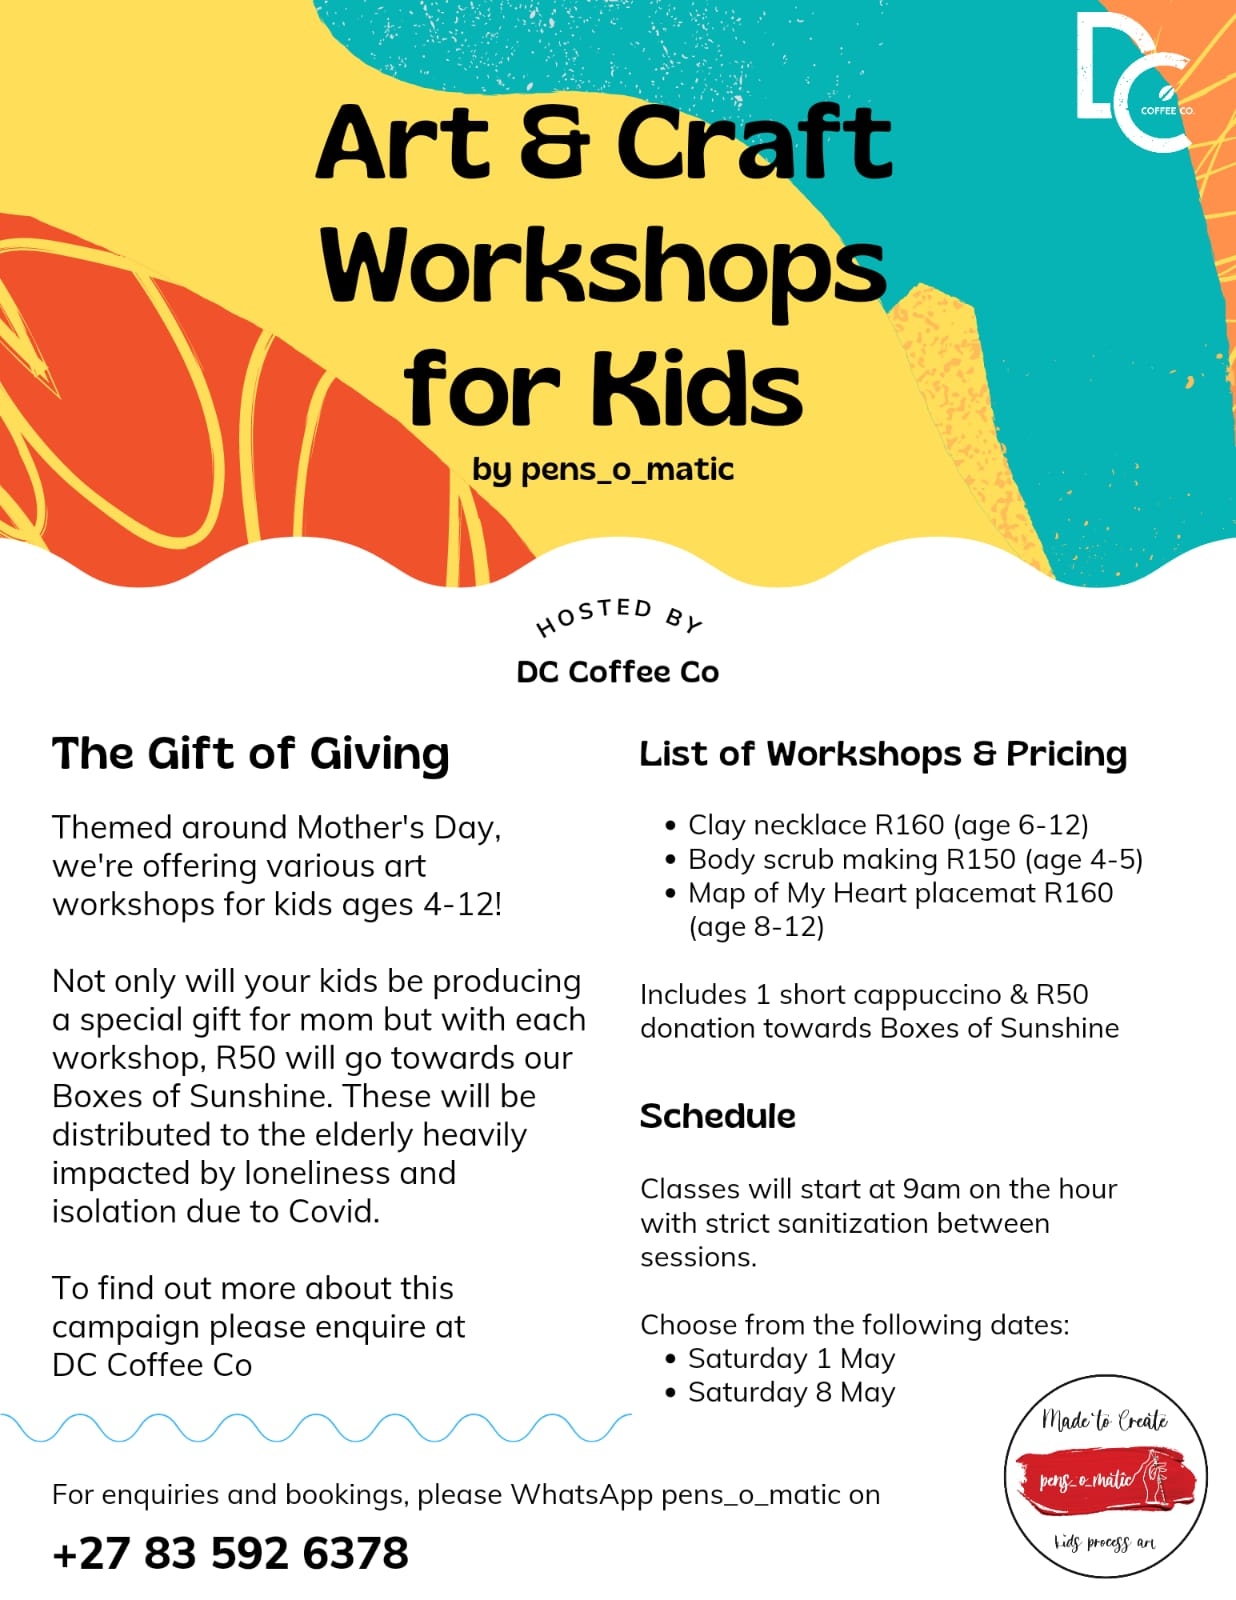 Art & Craft Workshop for Kids, Mothers Day, Pens_o_matic